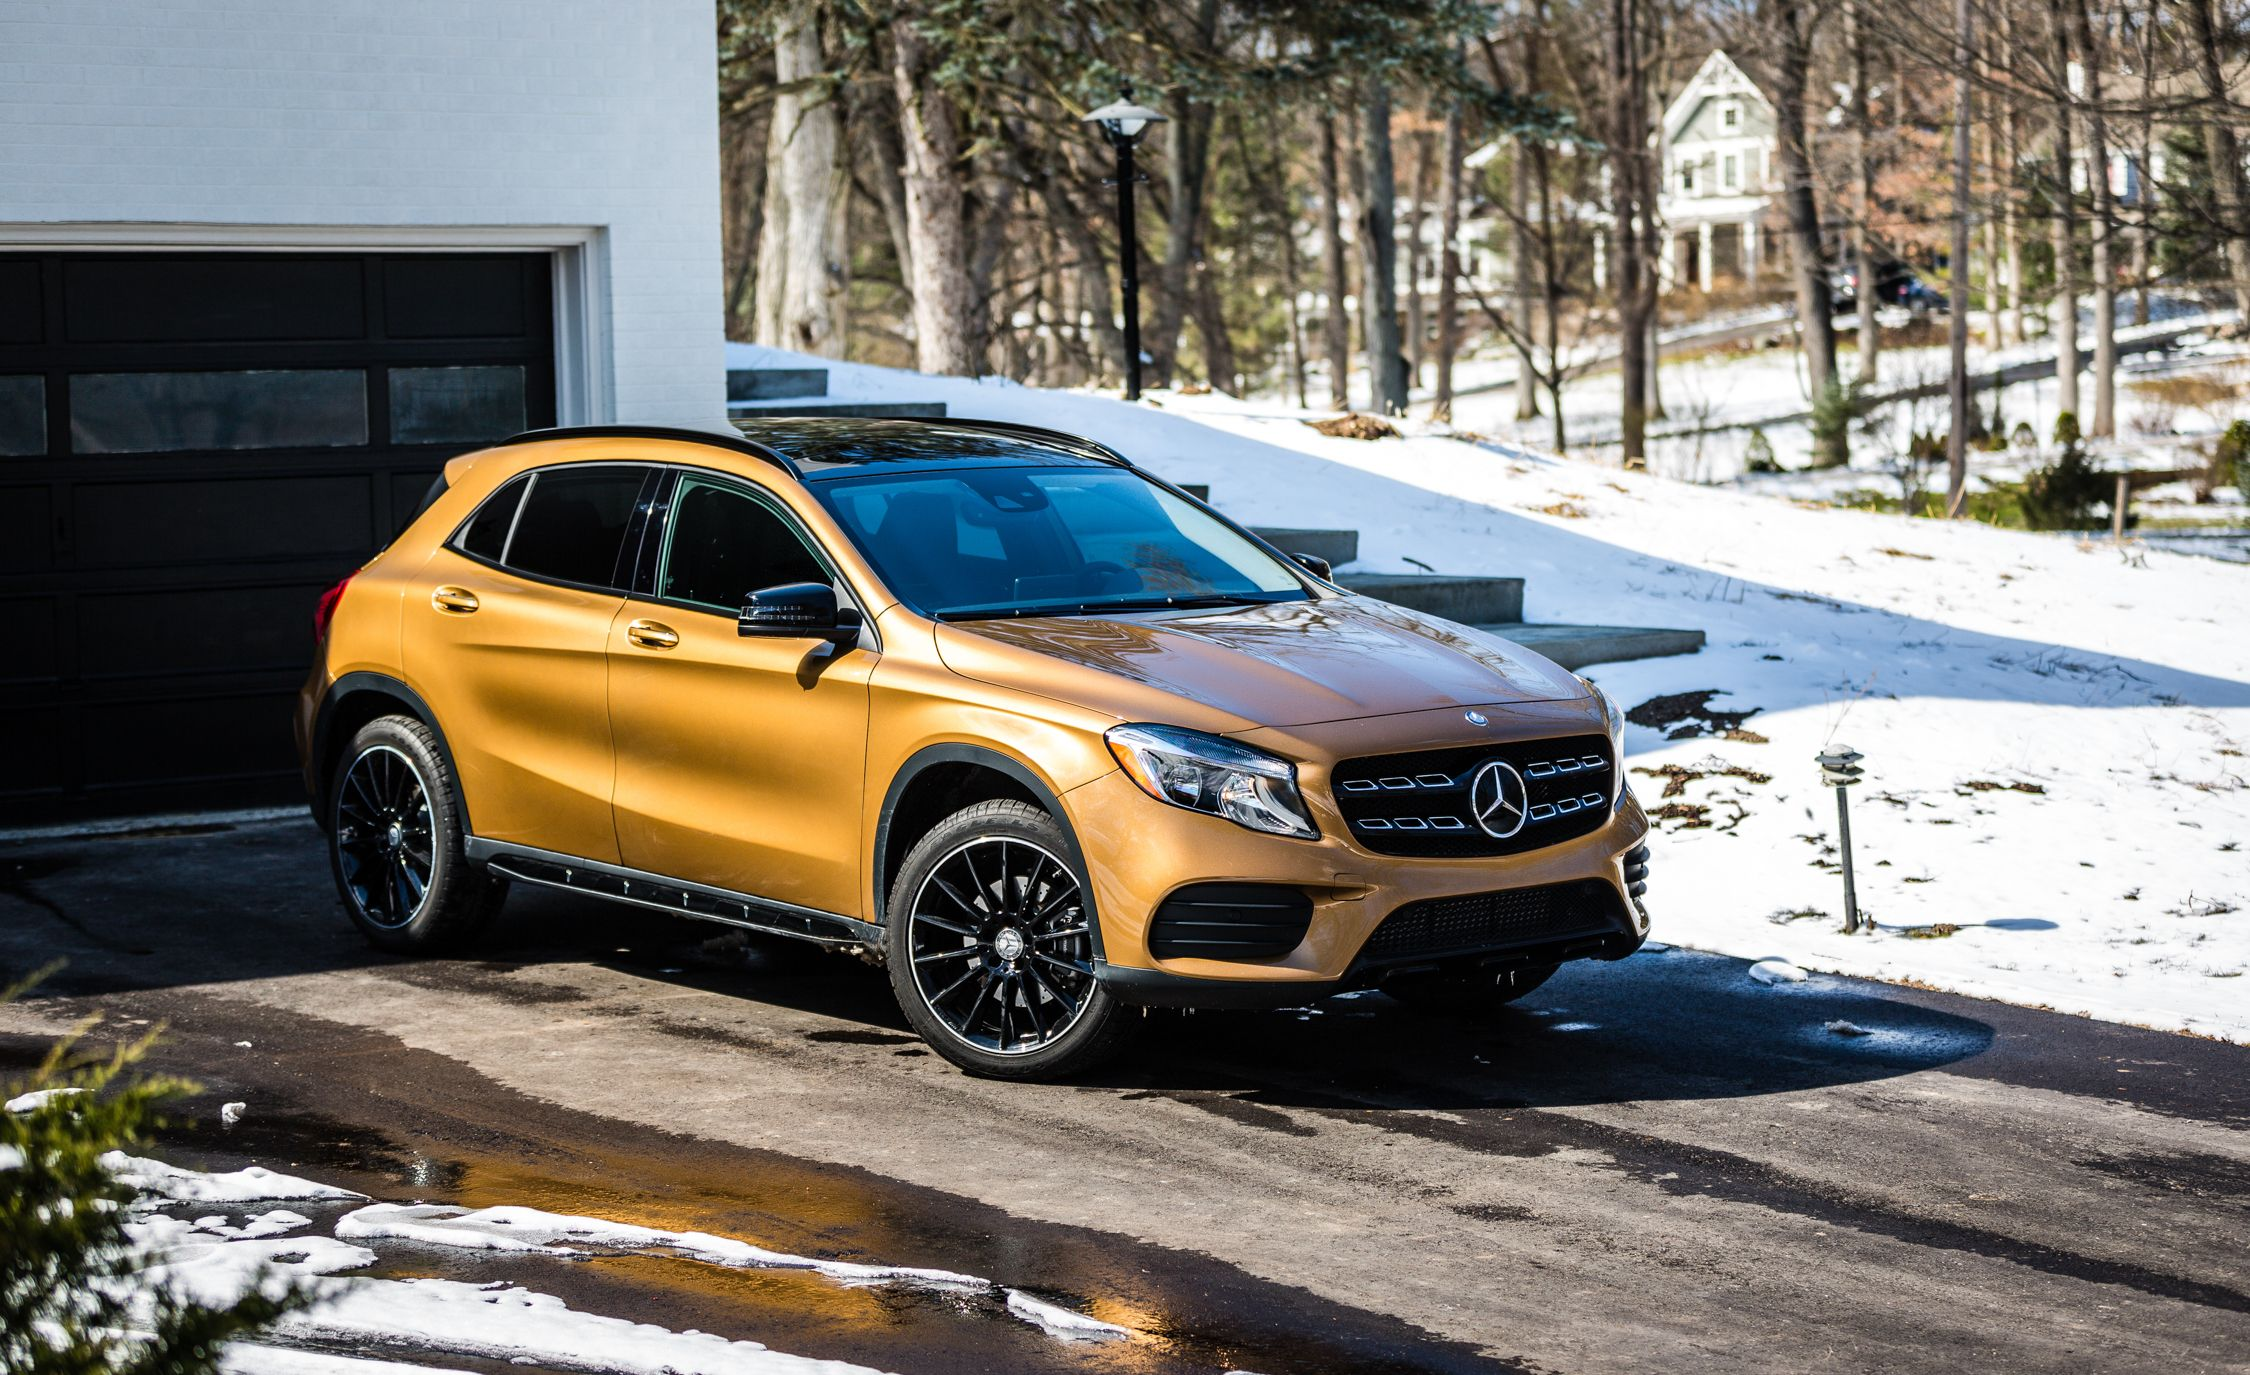 2019 Mercedes Benz Gla Cl Reviews Price Photos And Specs Car Driver